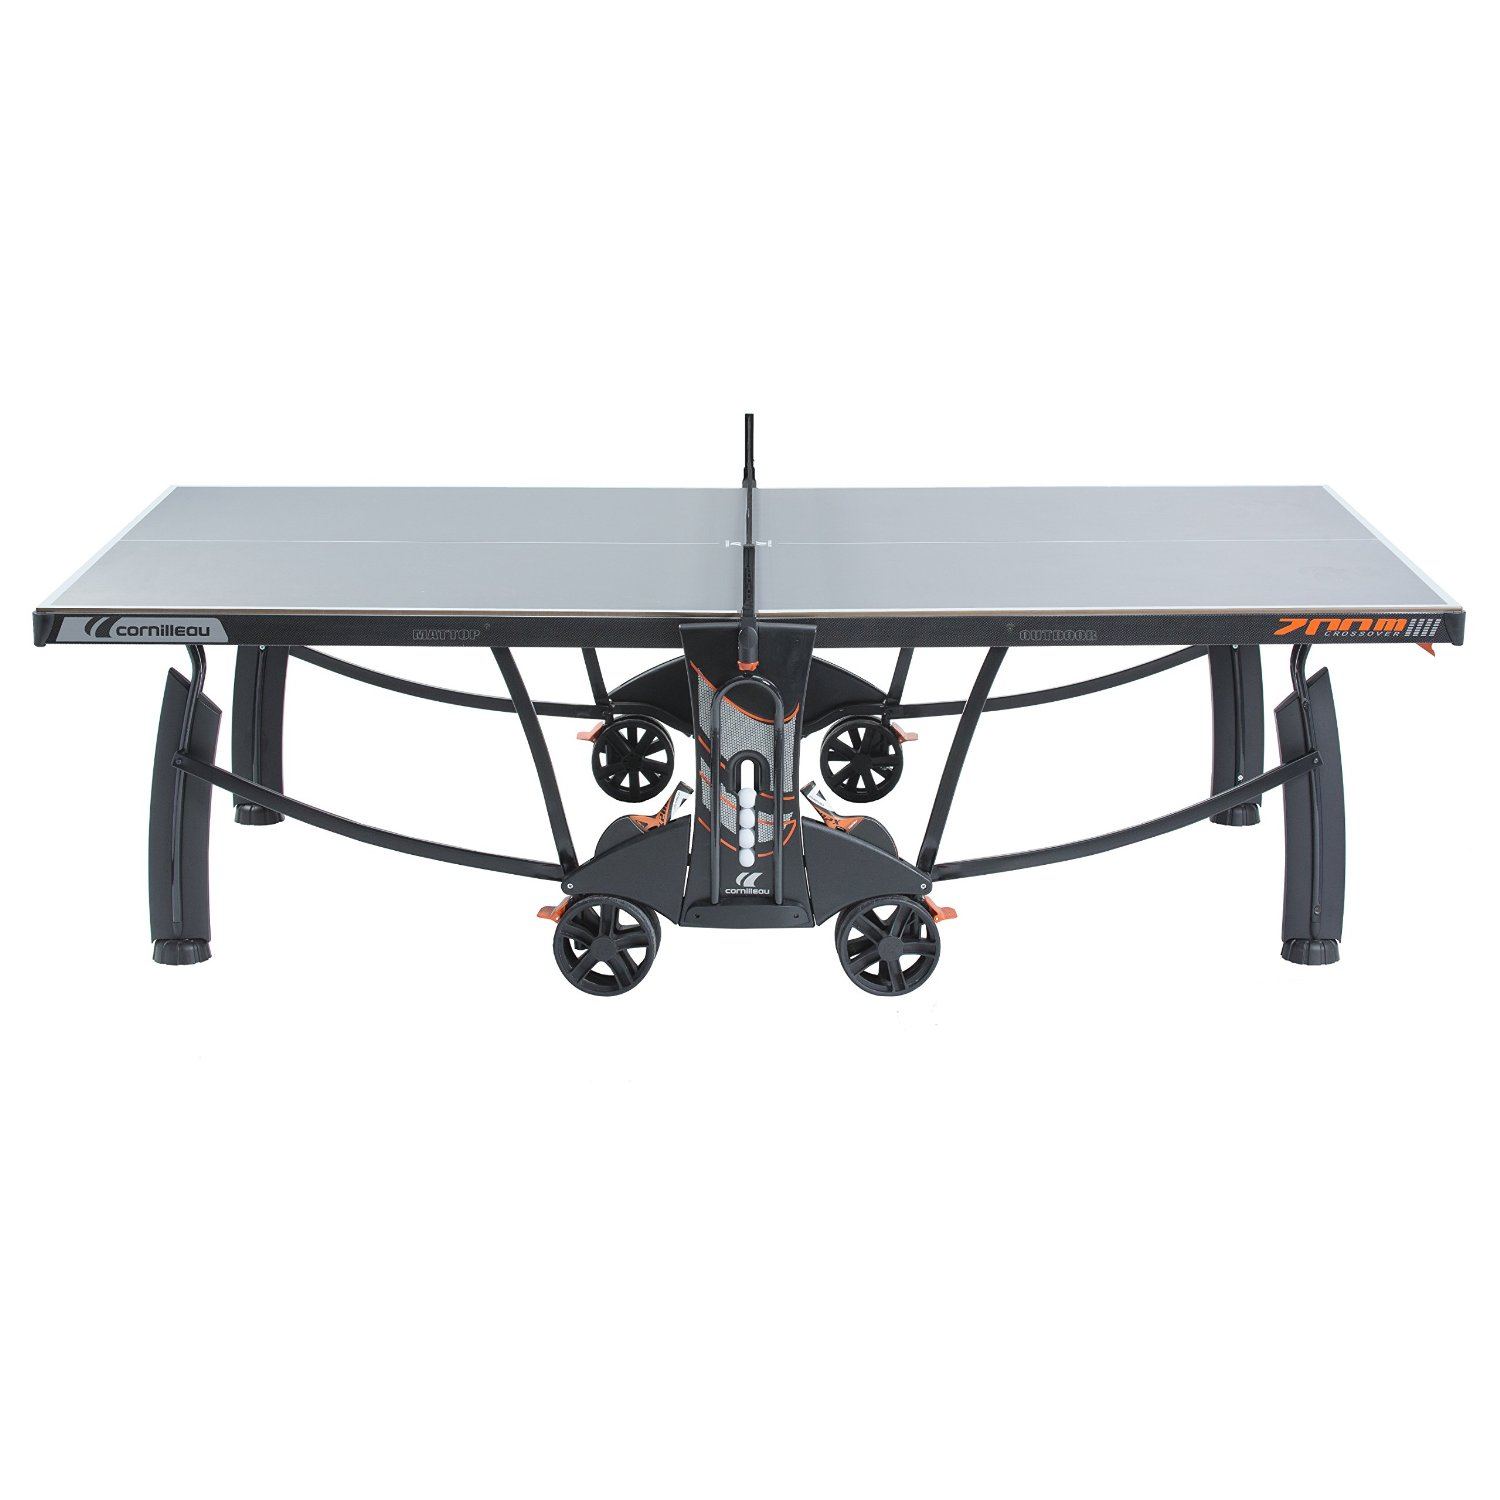 cornilleau 700m crossover outdoor ping pong table. Black Bedroom Furniture Sets. Home Design Ideas